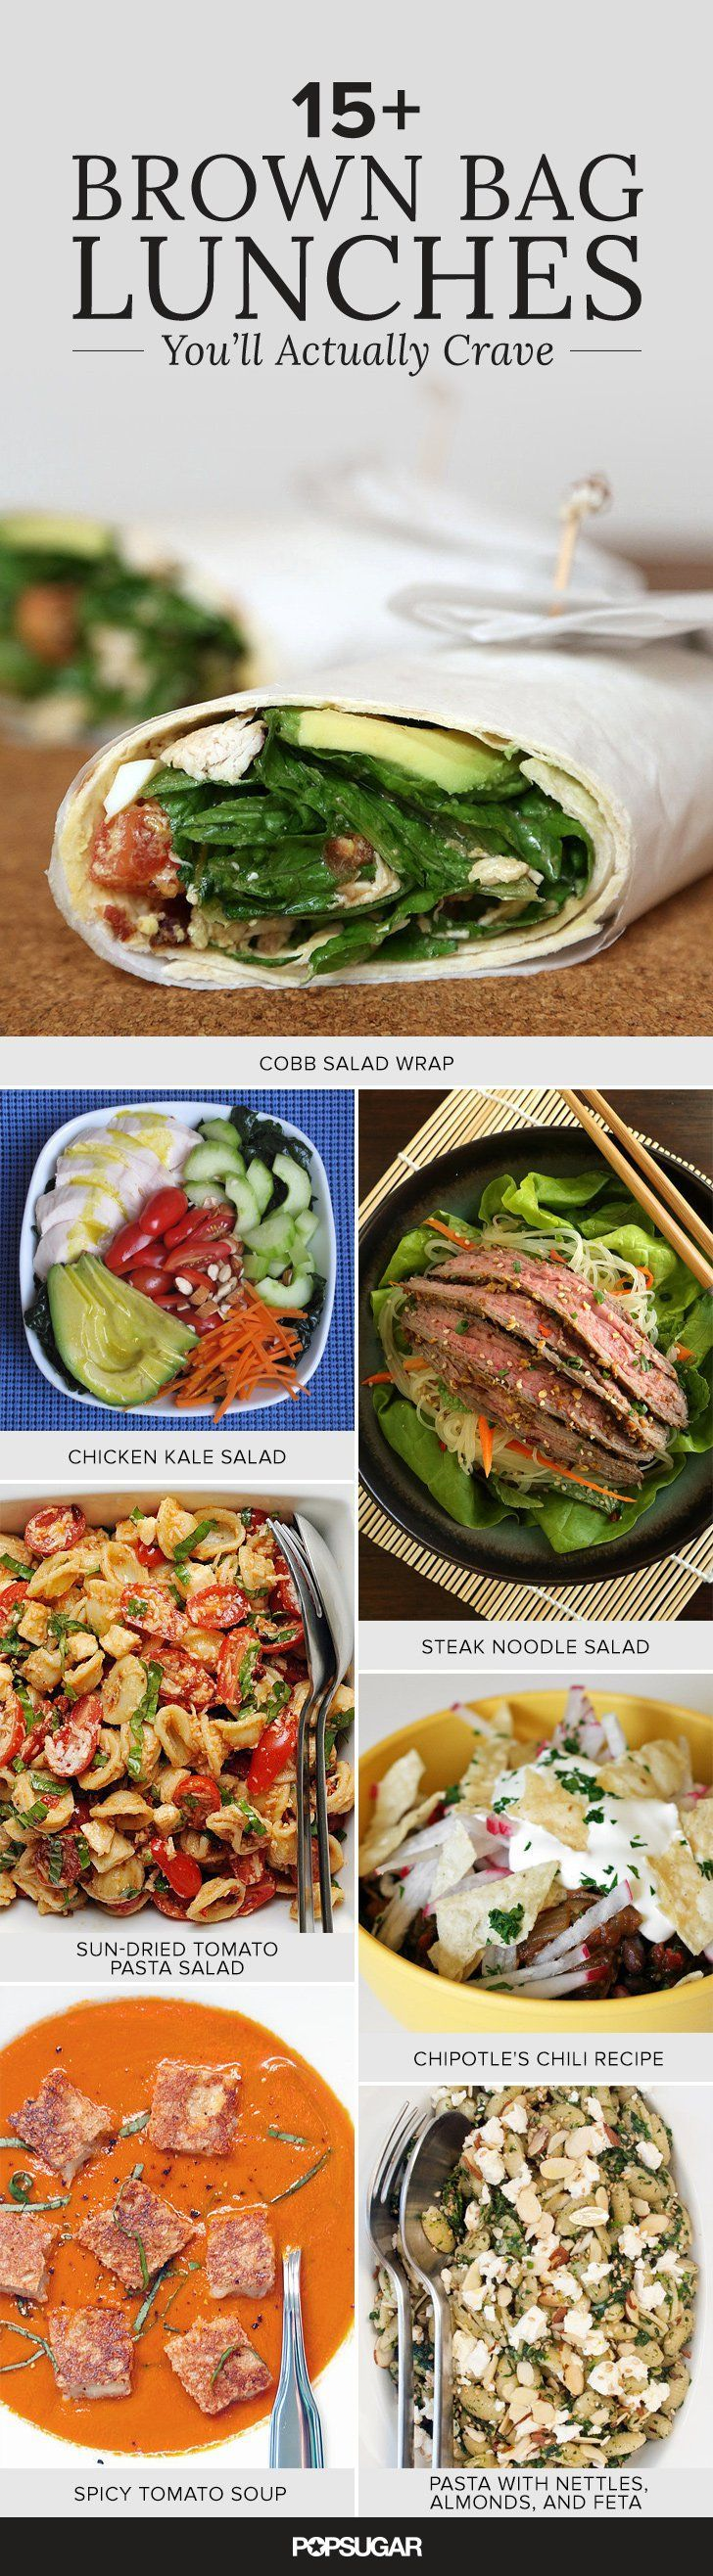 40 good looking lunches to bring to work brown bags lunches and